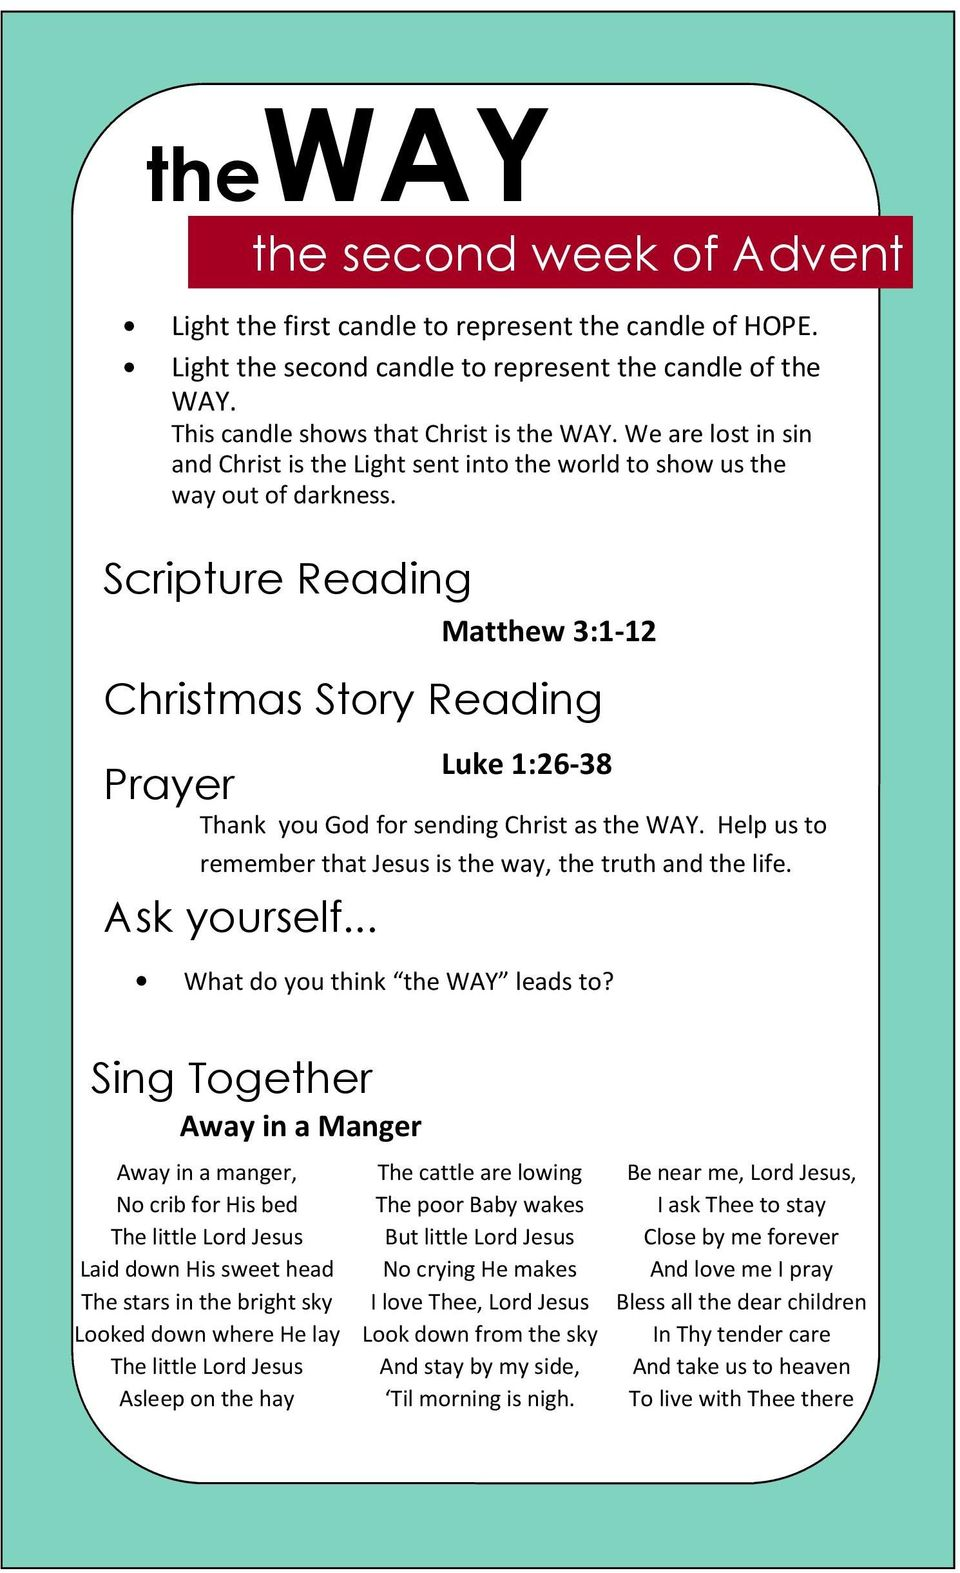 Scripture Reading Matthew 3:1-12 Christmas Story Reading Luke 1:26-38 Thank you God for sending Christ as the WAY. Help us to remember that Jesus is the way, the truth and the life.